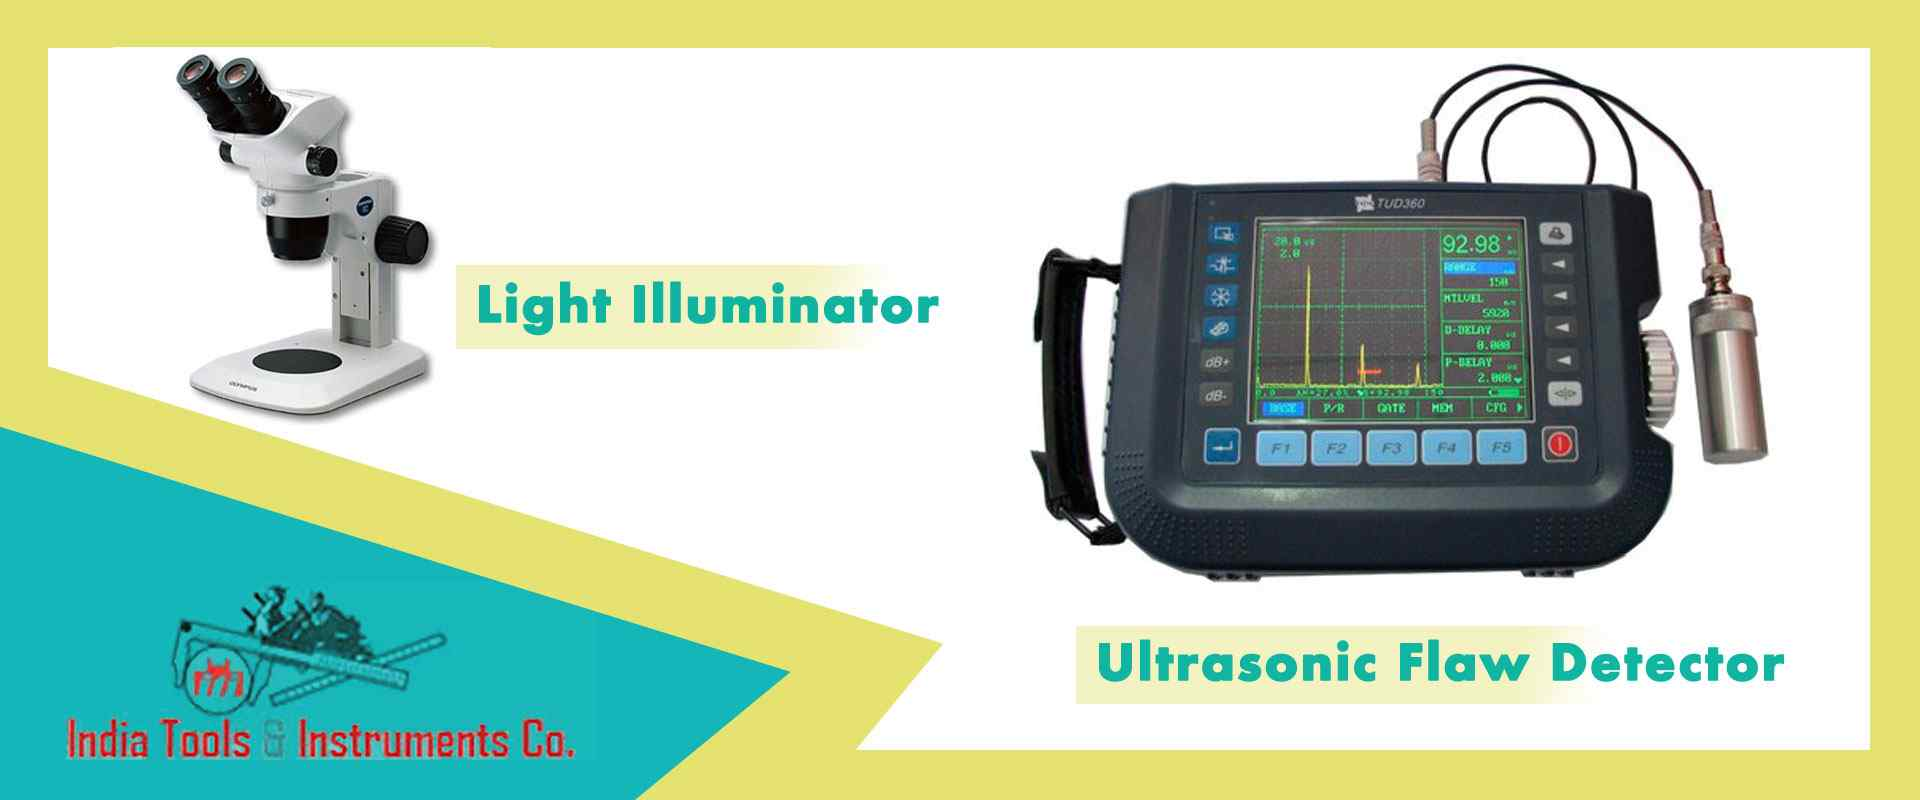 Light Illuminator